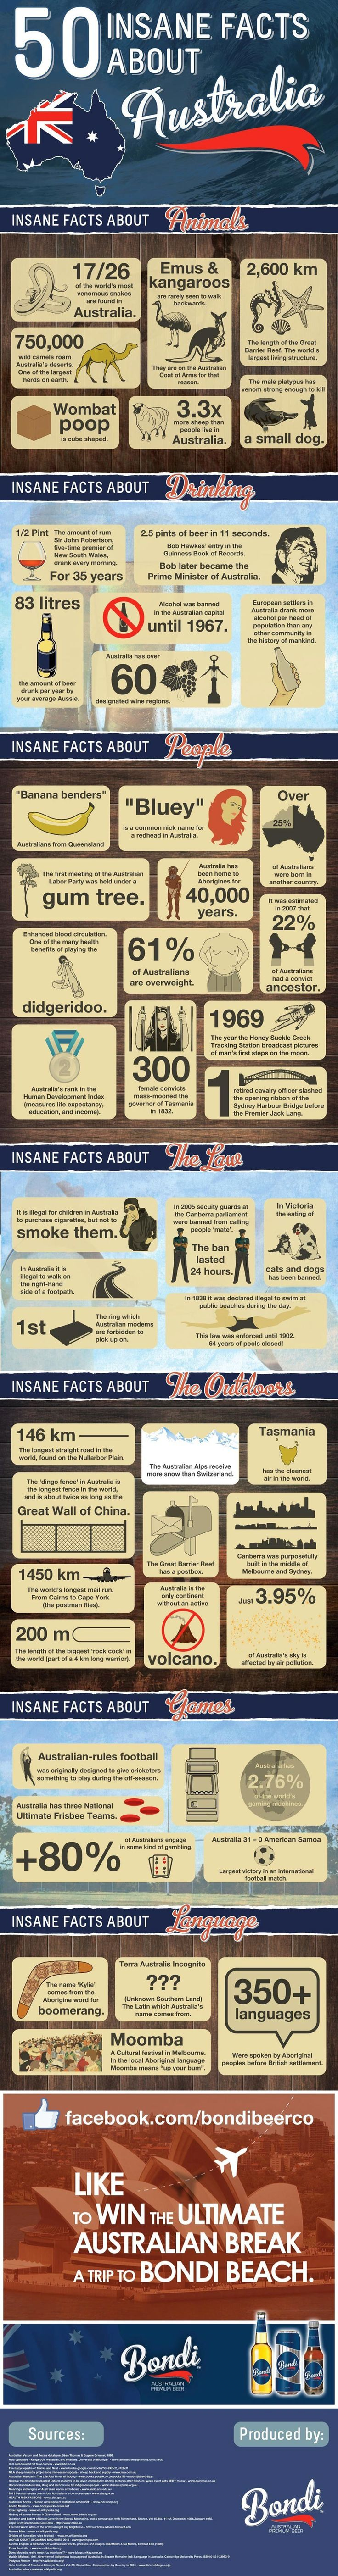 50 Insane Facts About Australia - Travel Infographic. Statistics, geography, Australian culture, country history.